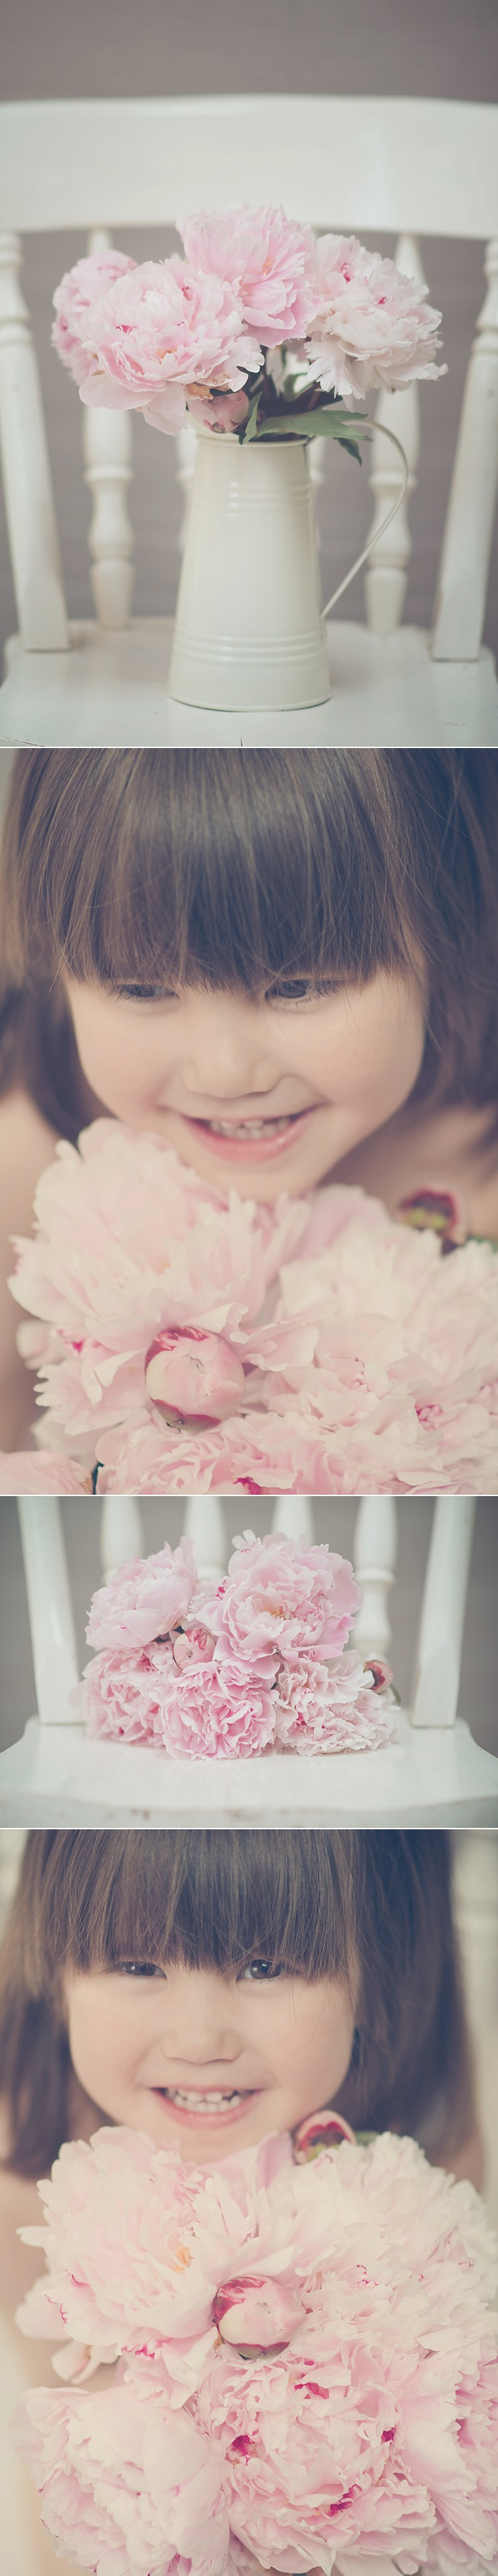 vintage-peonies-girl-london-lily-sawyer-photo